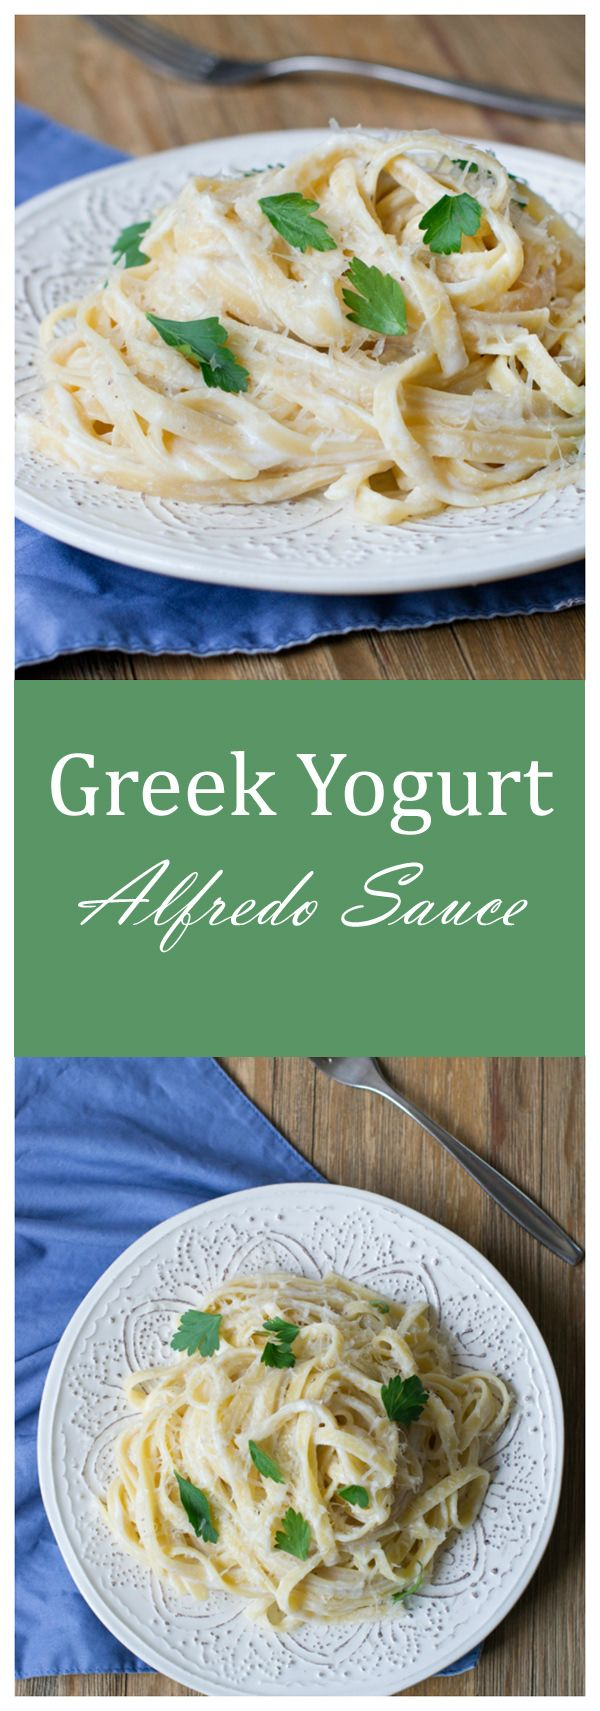 Get this delicious recipe for a lean protein-packed Alfredo Sauce that uses Greek yogurt instead of tons of butter and cream. This post is sponsored by Stonyfield.